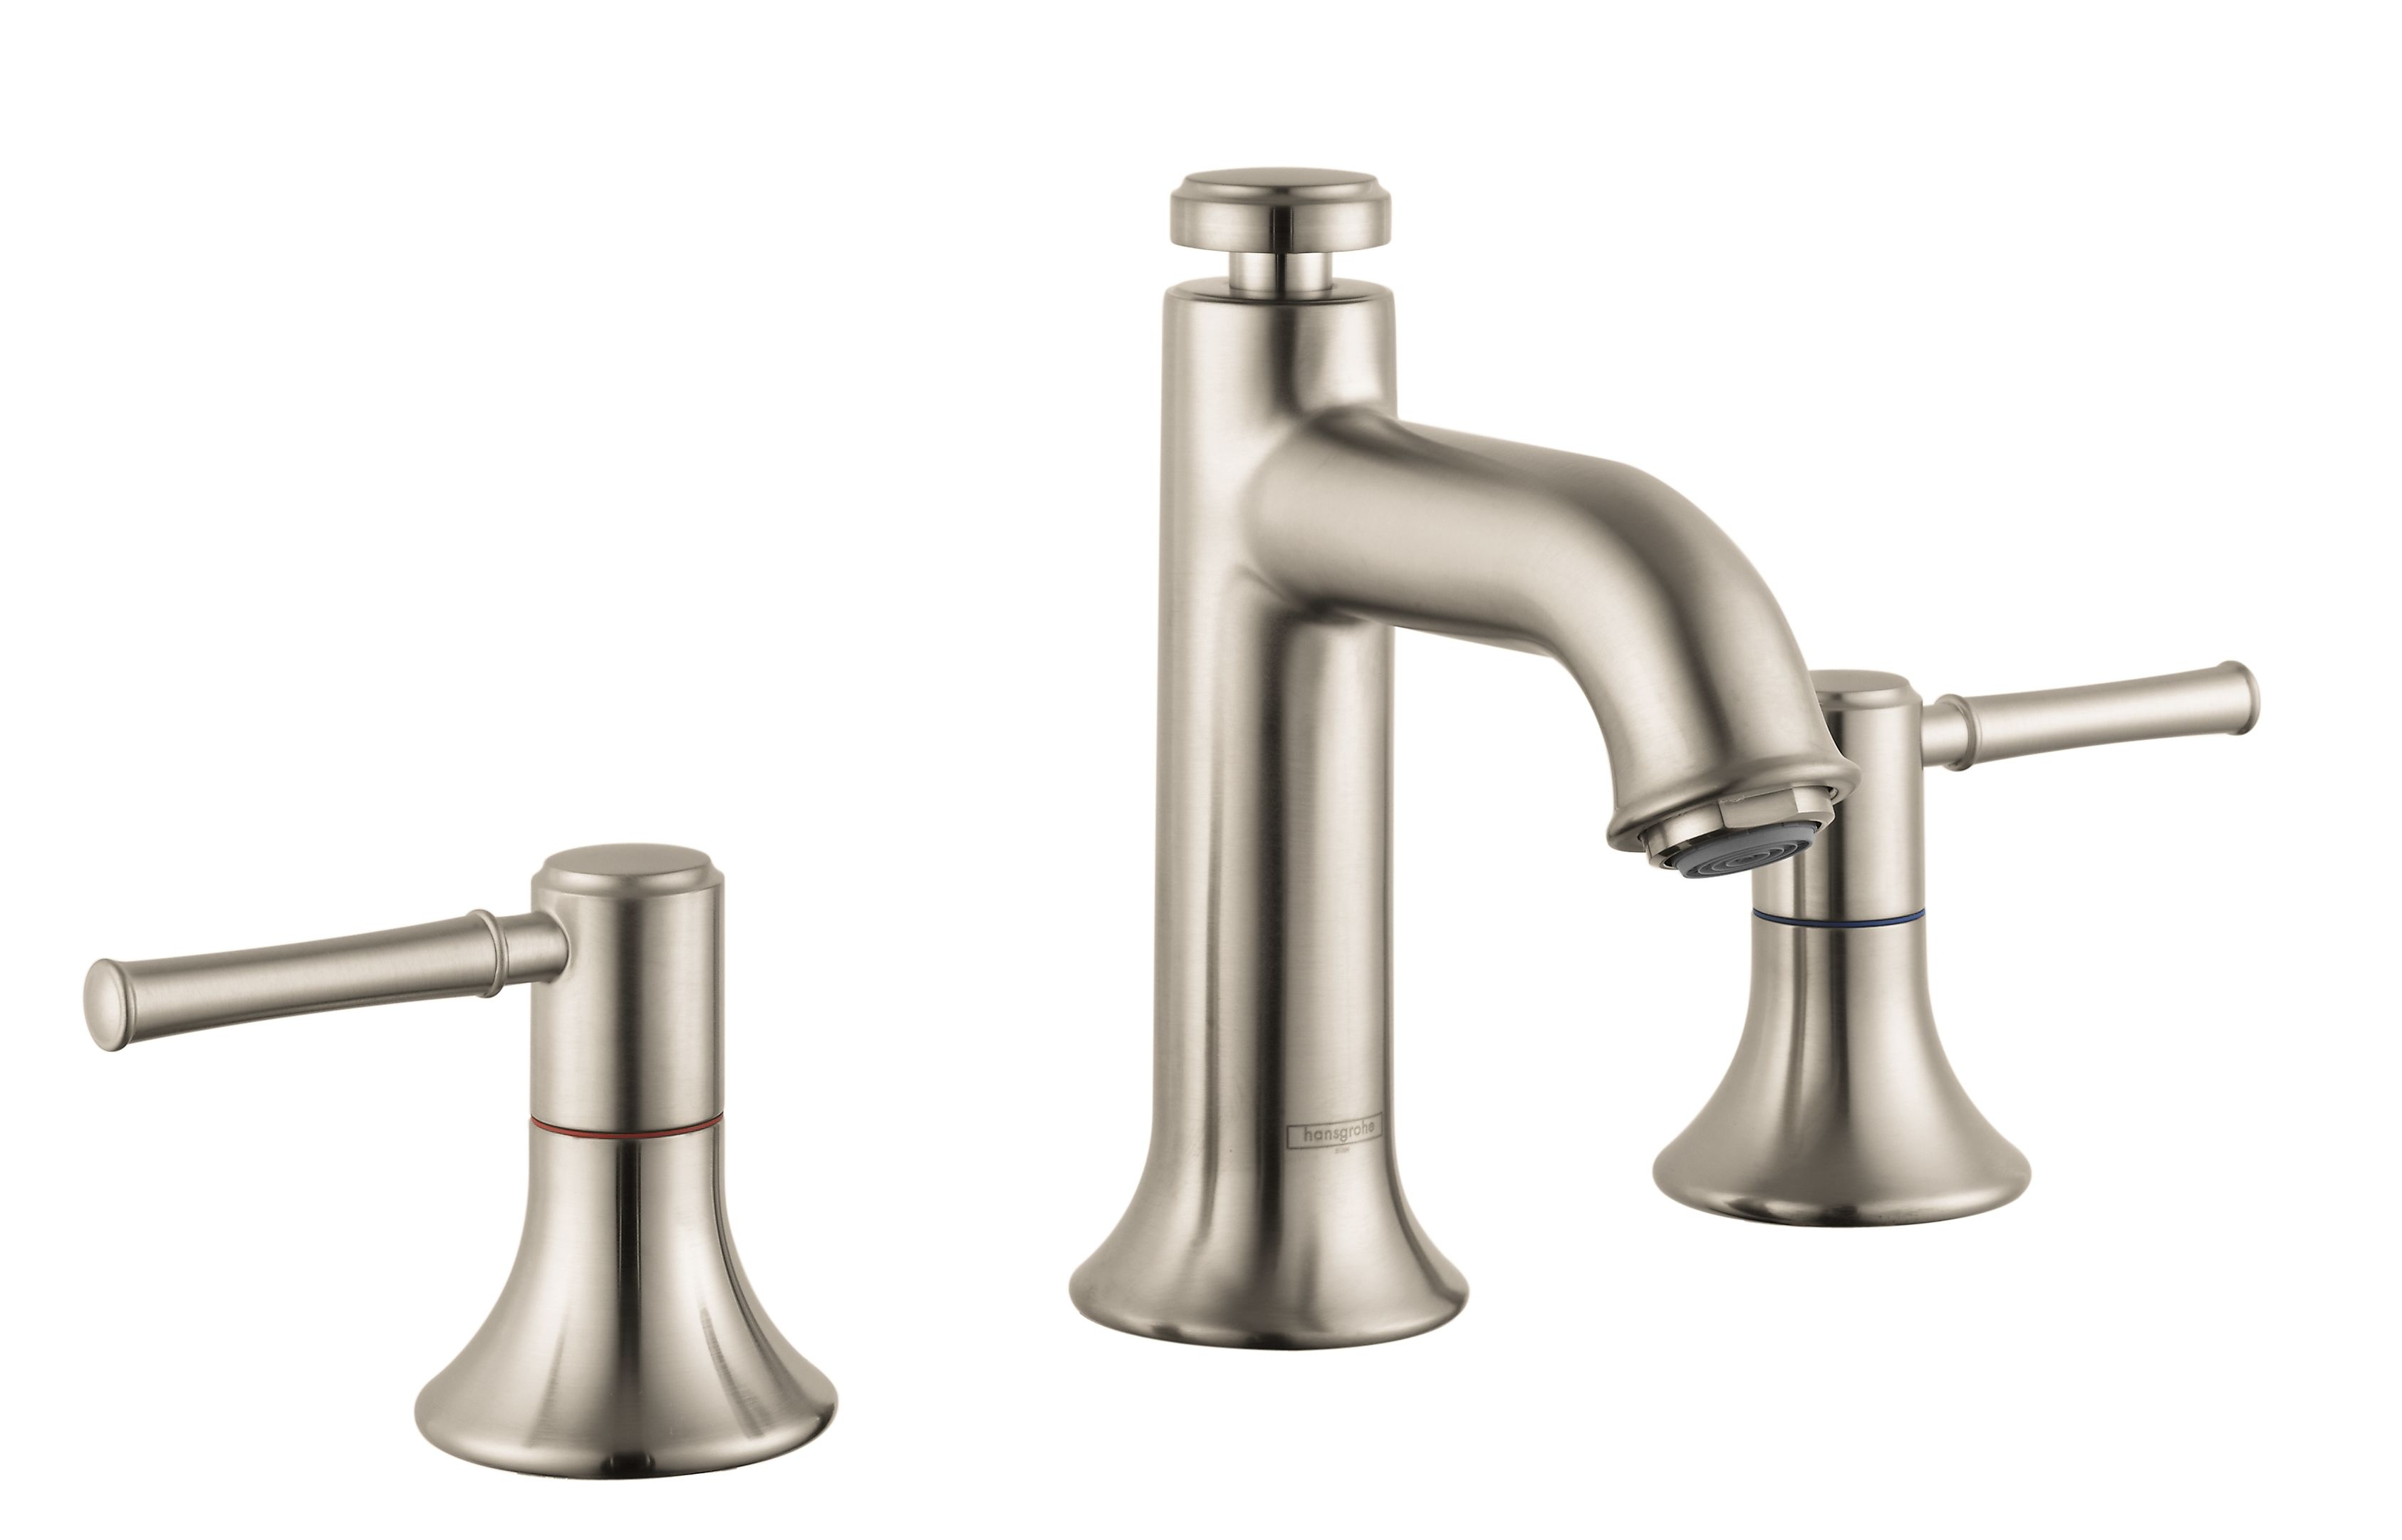 Hansgrohe 14113821 Brushed Nickel Talis C 12 Gpm Widespread intended for proportions 3372 X 2162